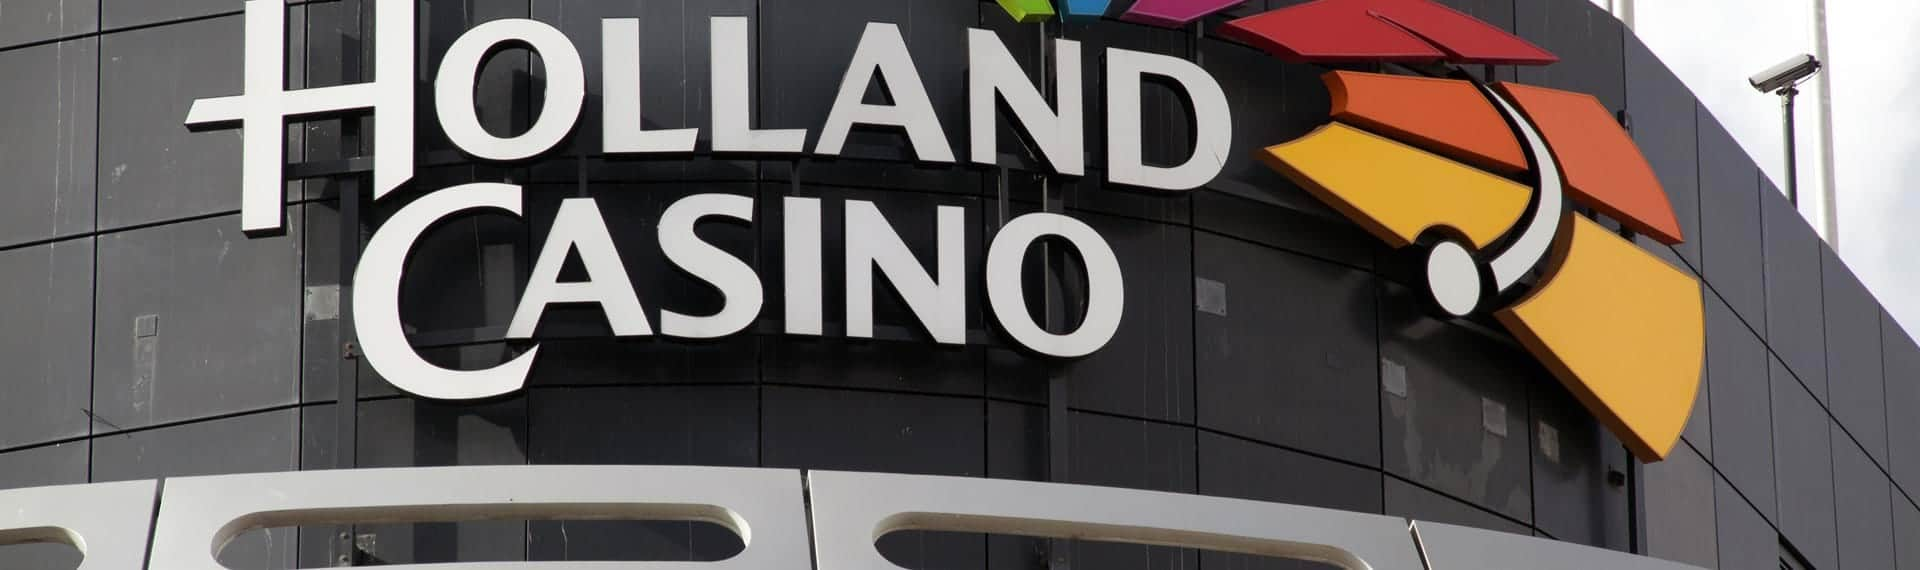 Holland Casino logo